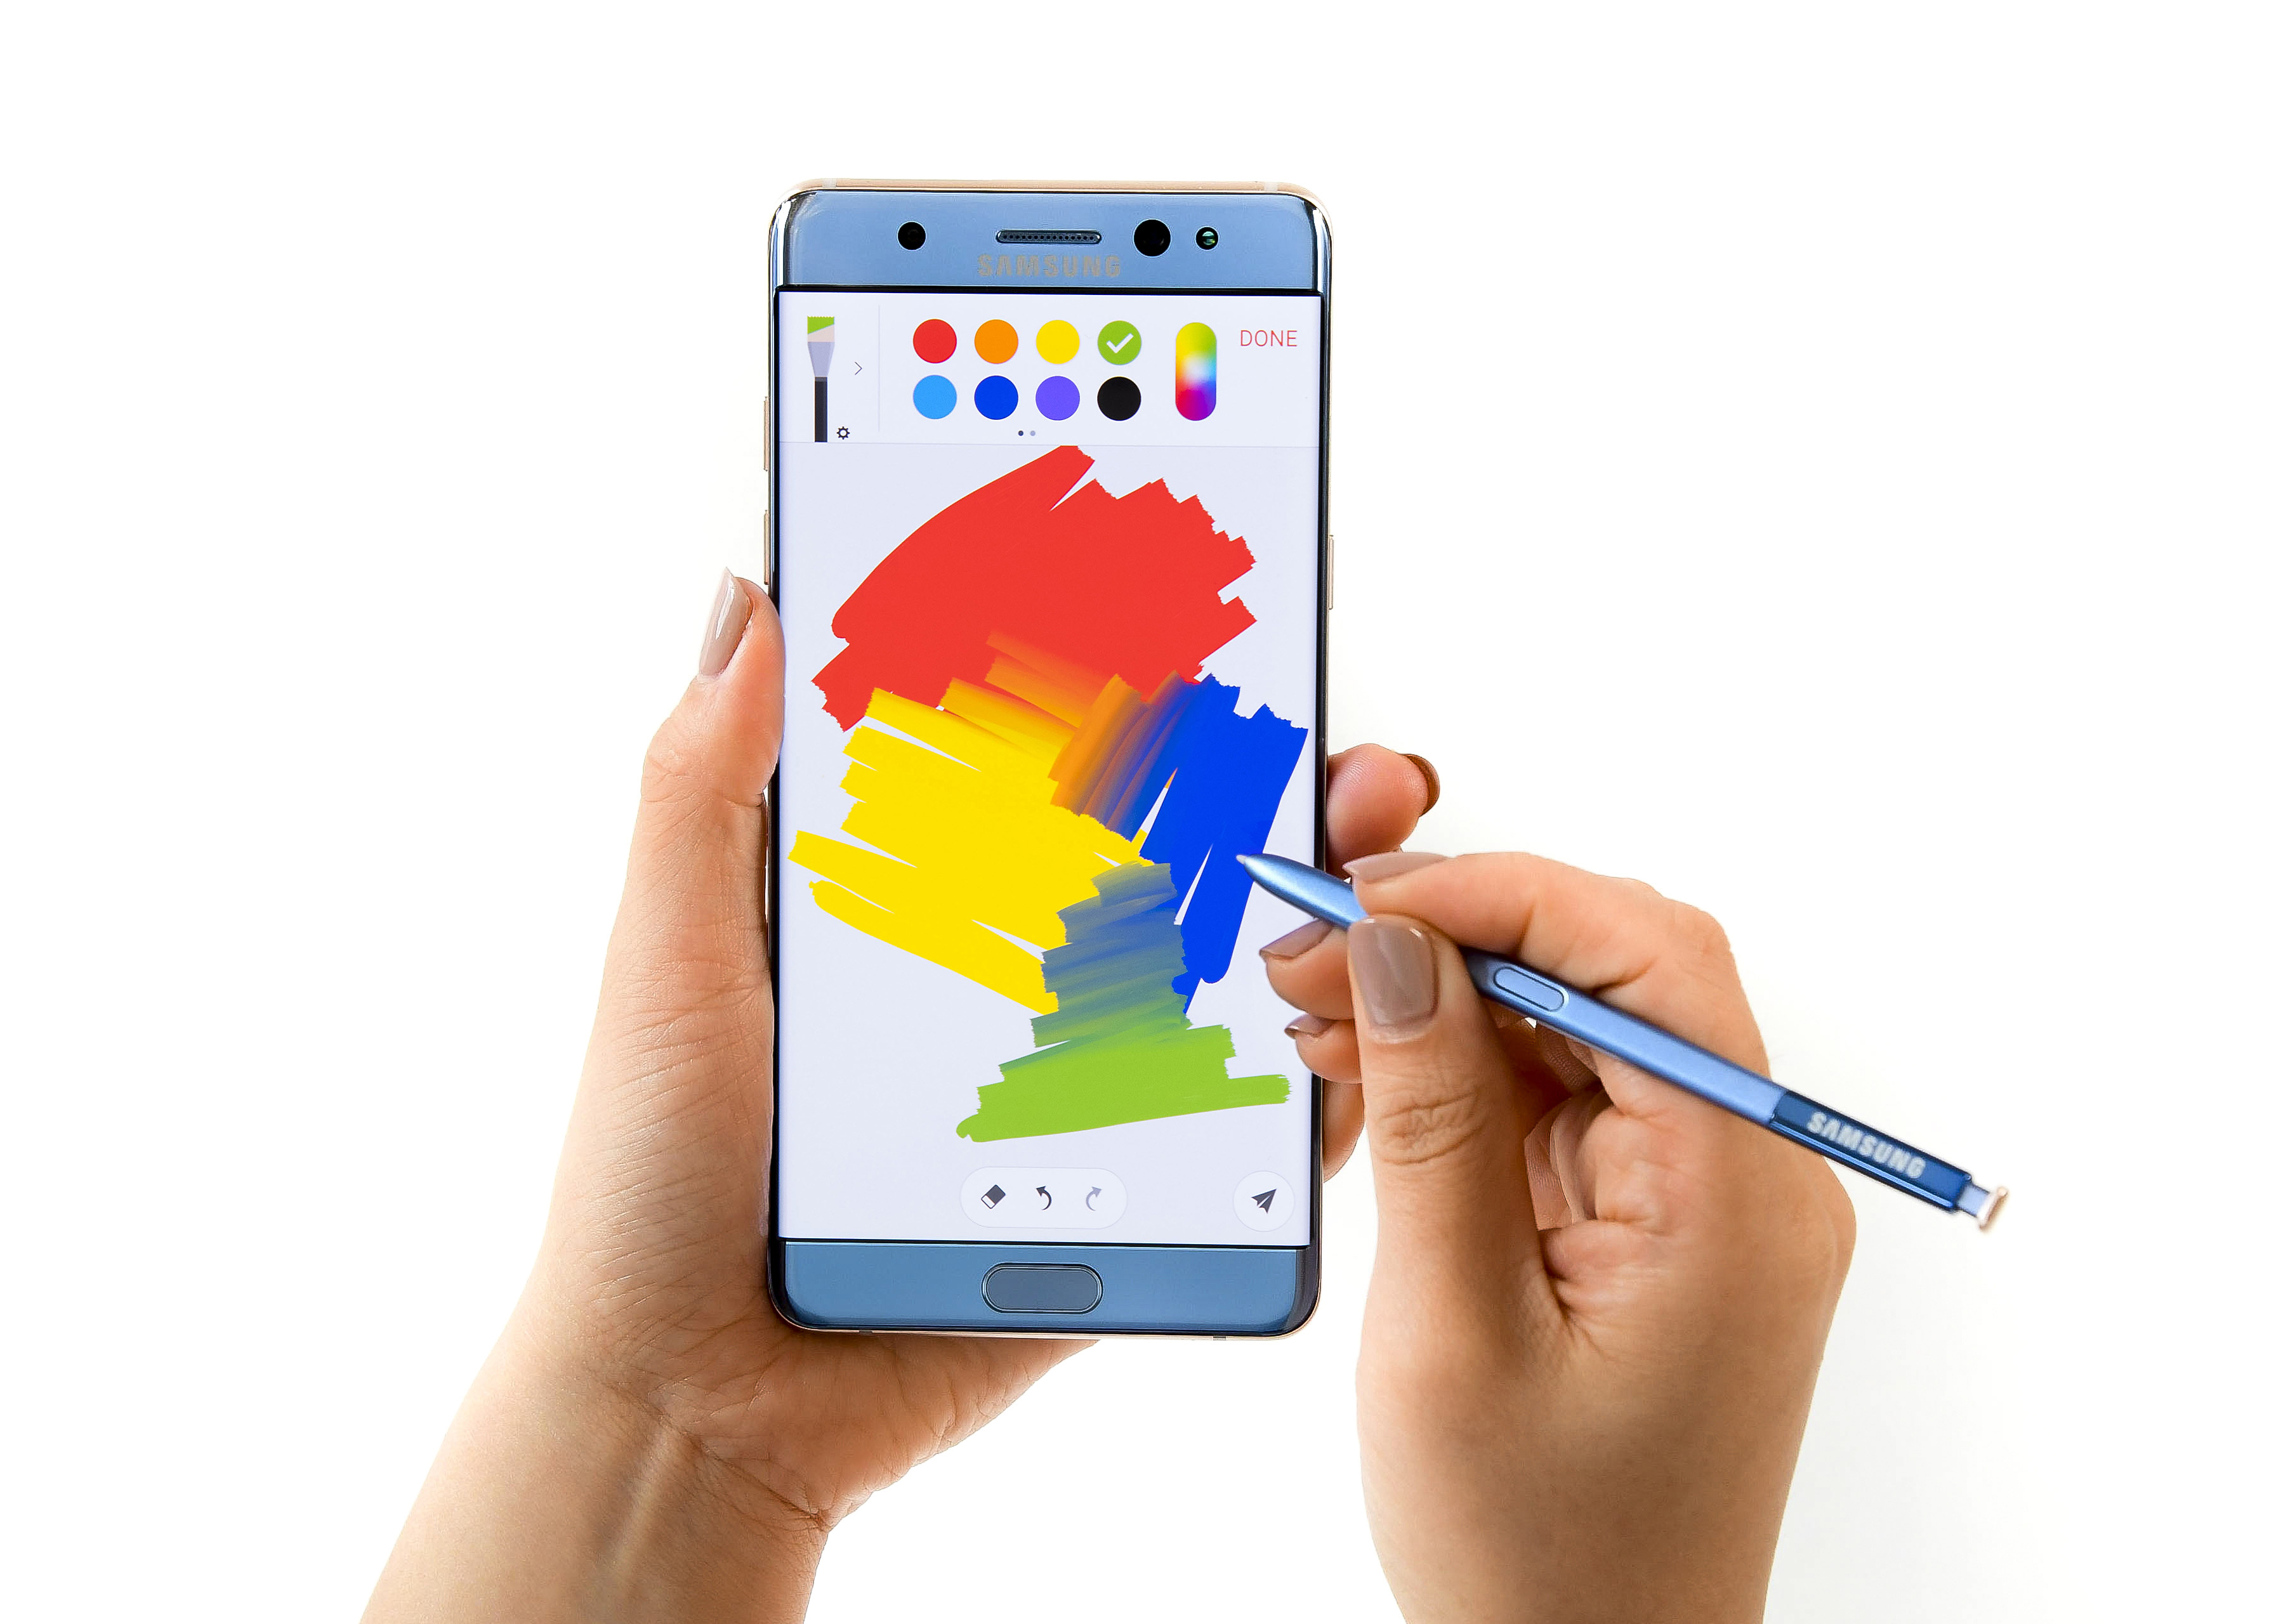 galaxy-note7-hands-on_28101969654_o